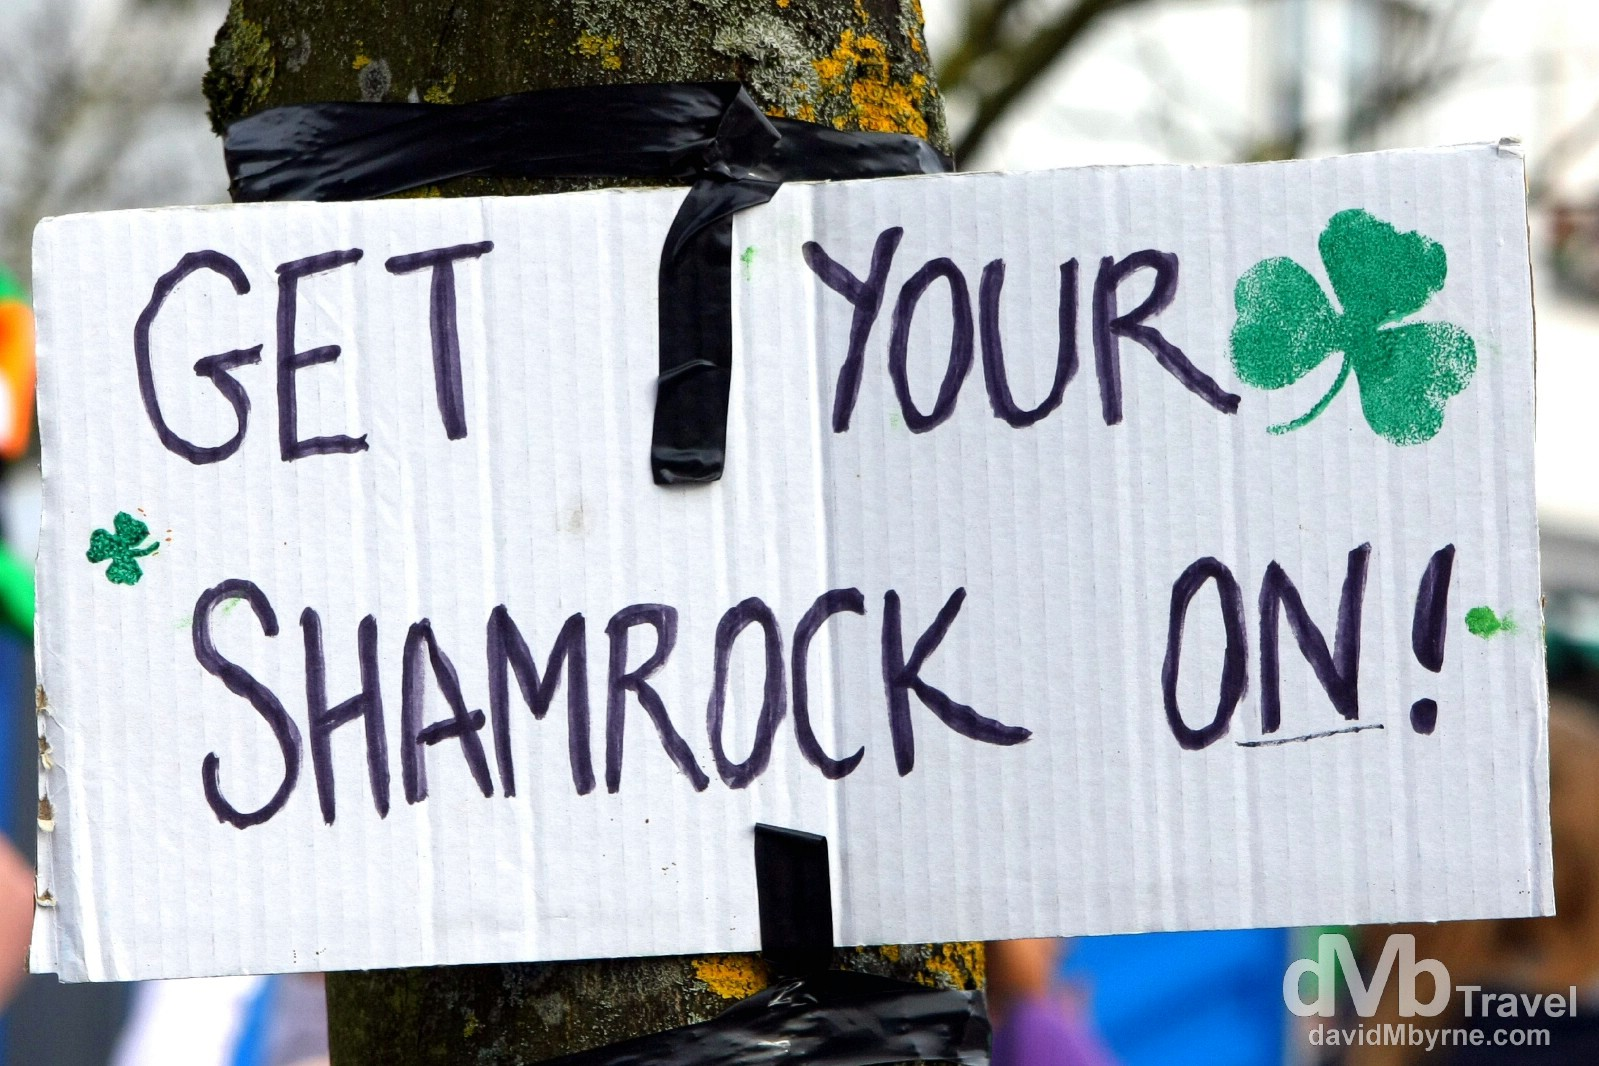 Get Your Shamrock On! Ireland Road Trip 2014.